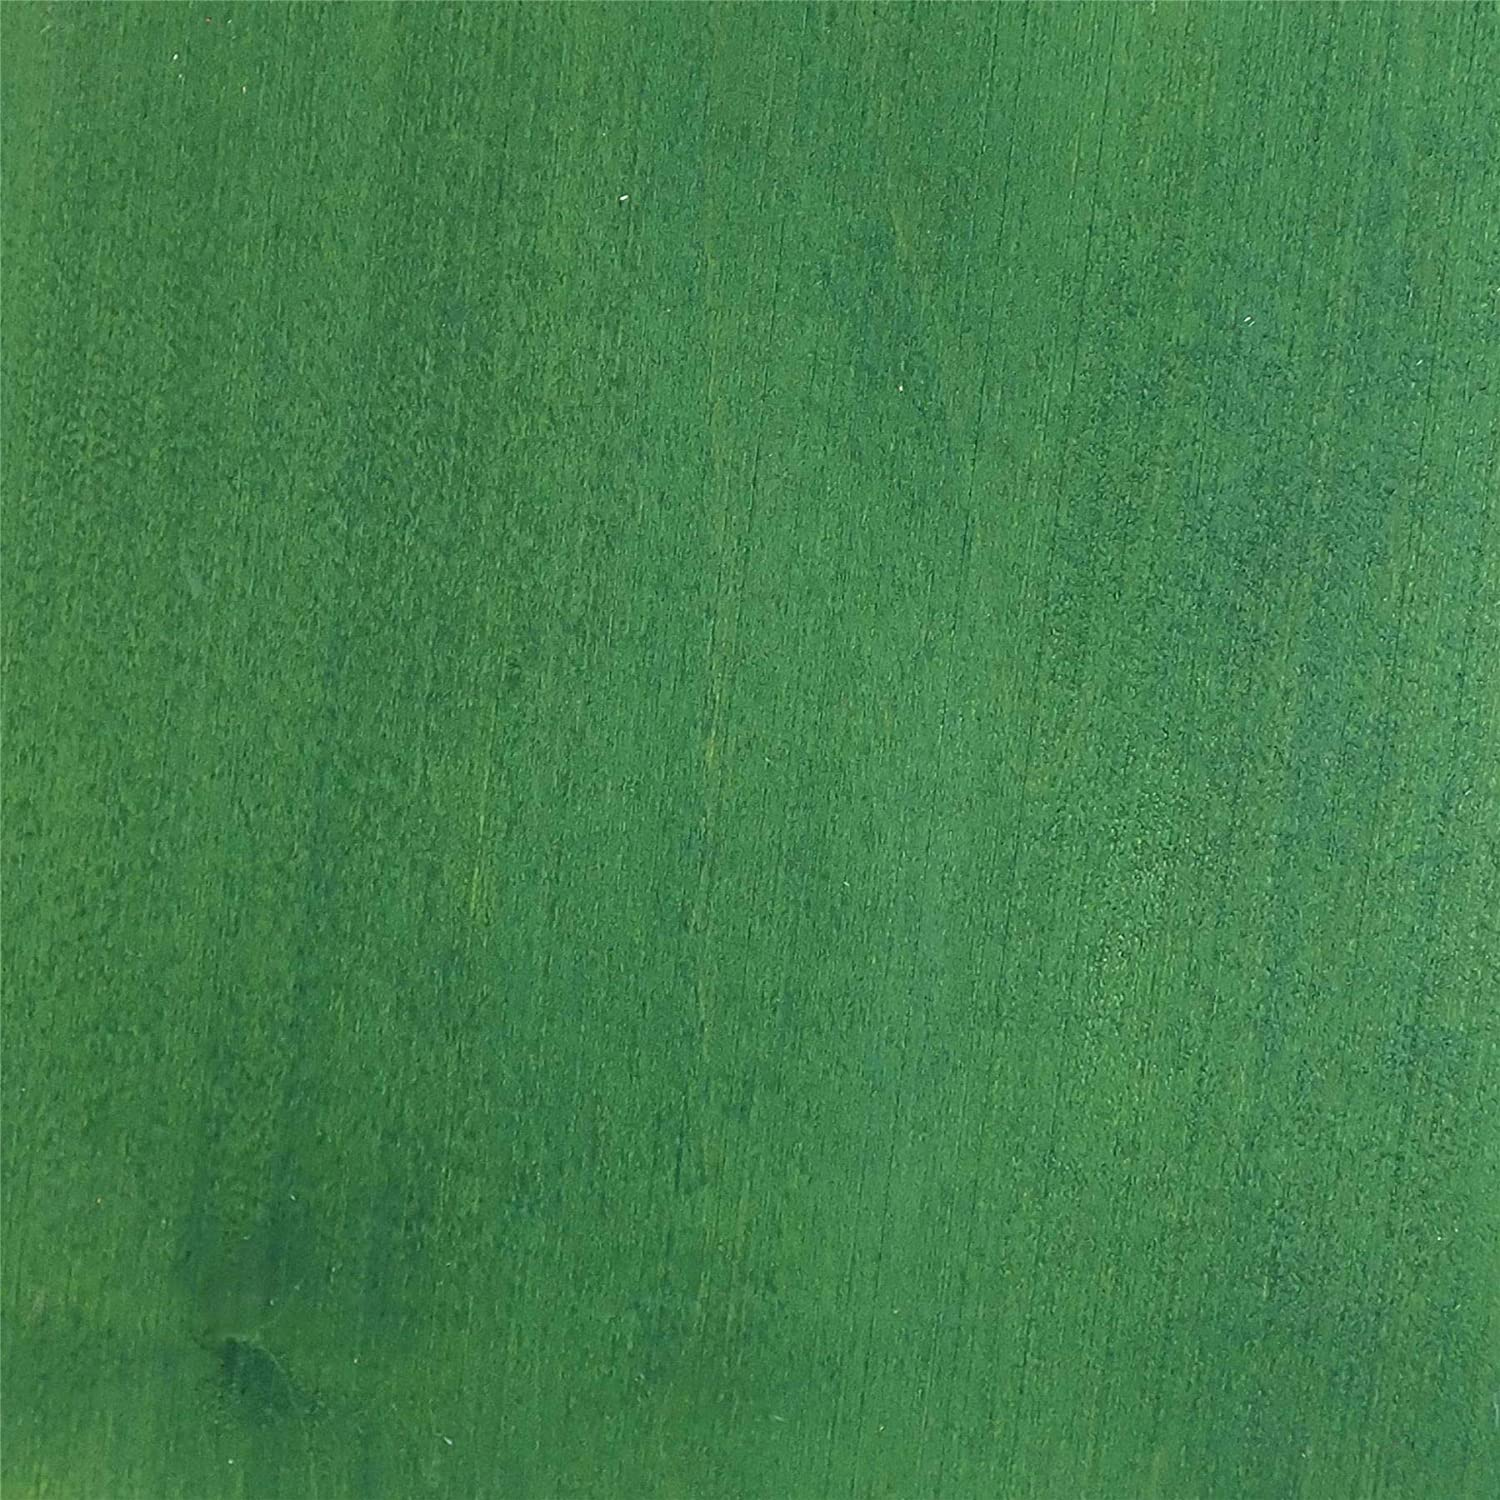 dartfords Forest Green Water Soluble Aniline Wood Dye Powder - 14g 1/2Oz Rothko And Frost